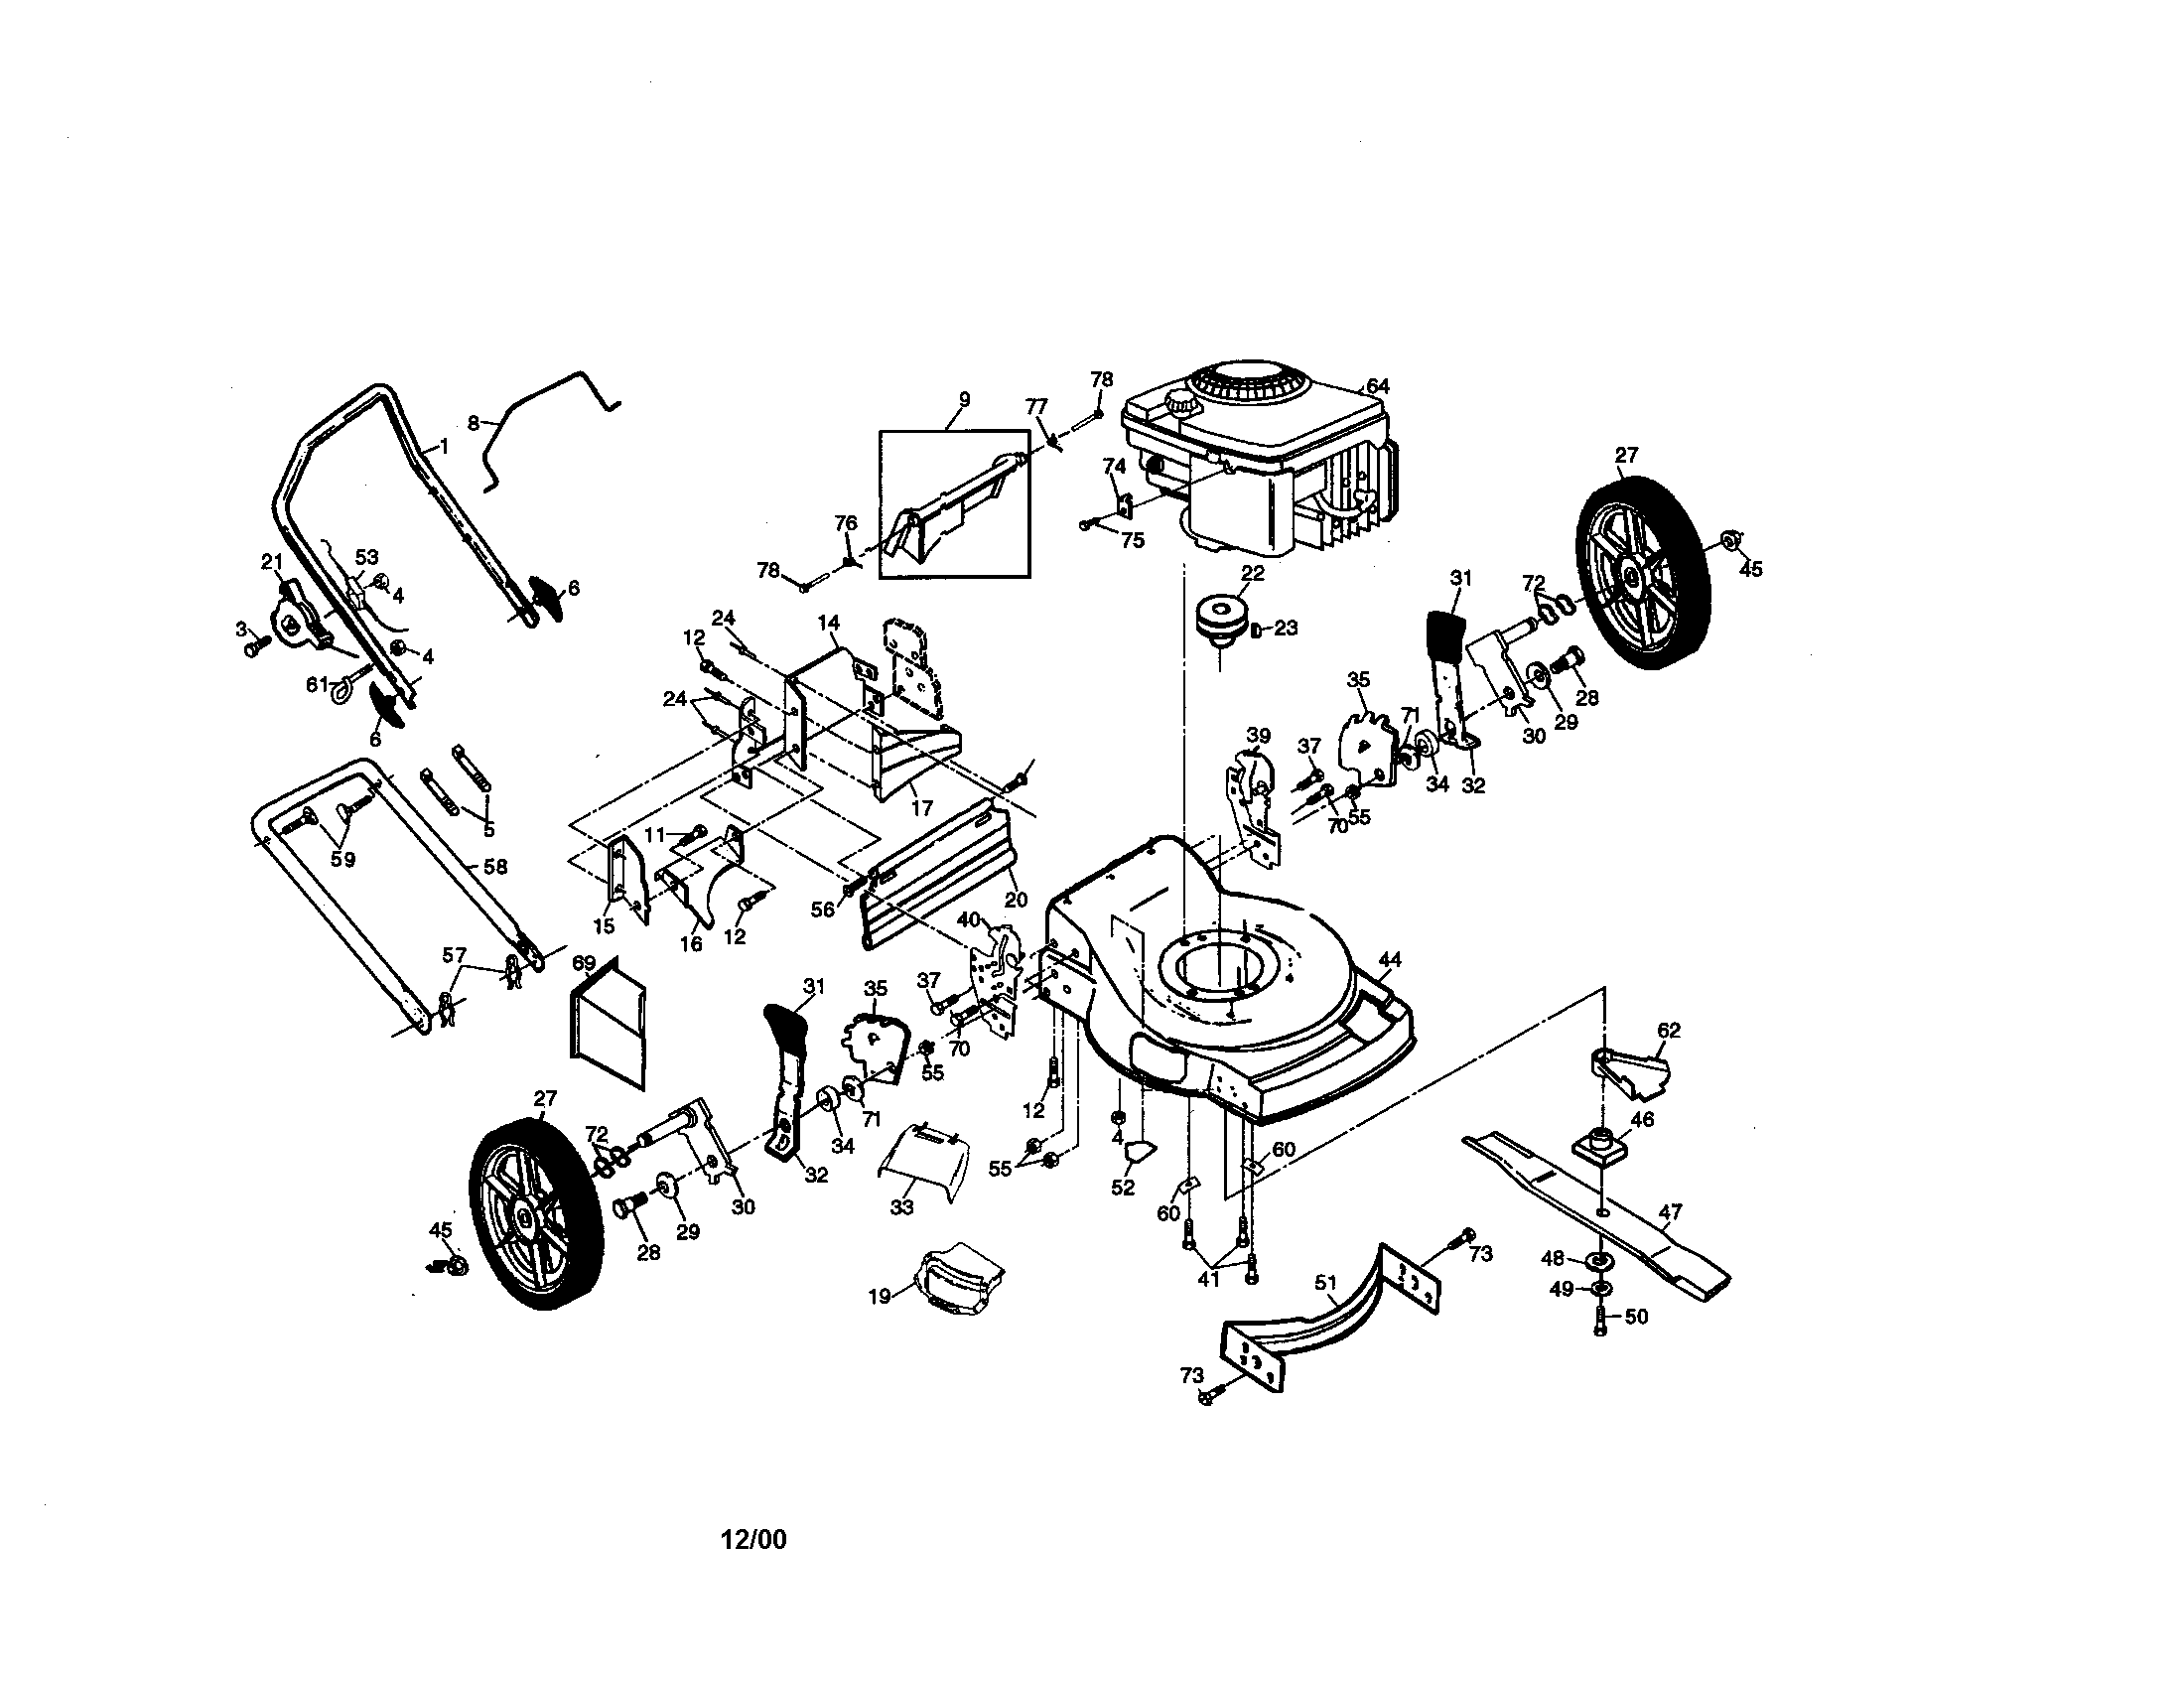 Noma Lawn Tractor Wiring Diagram Lawn Tractor Ford Wiring